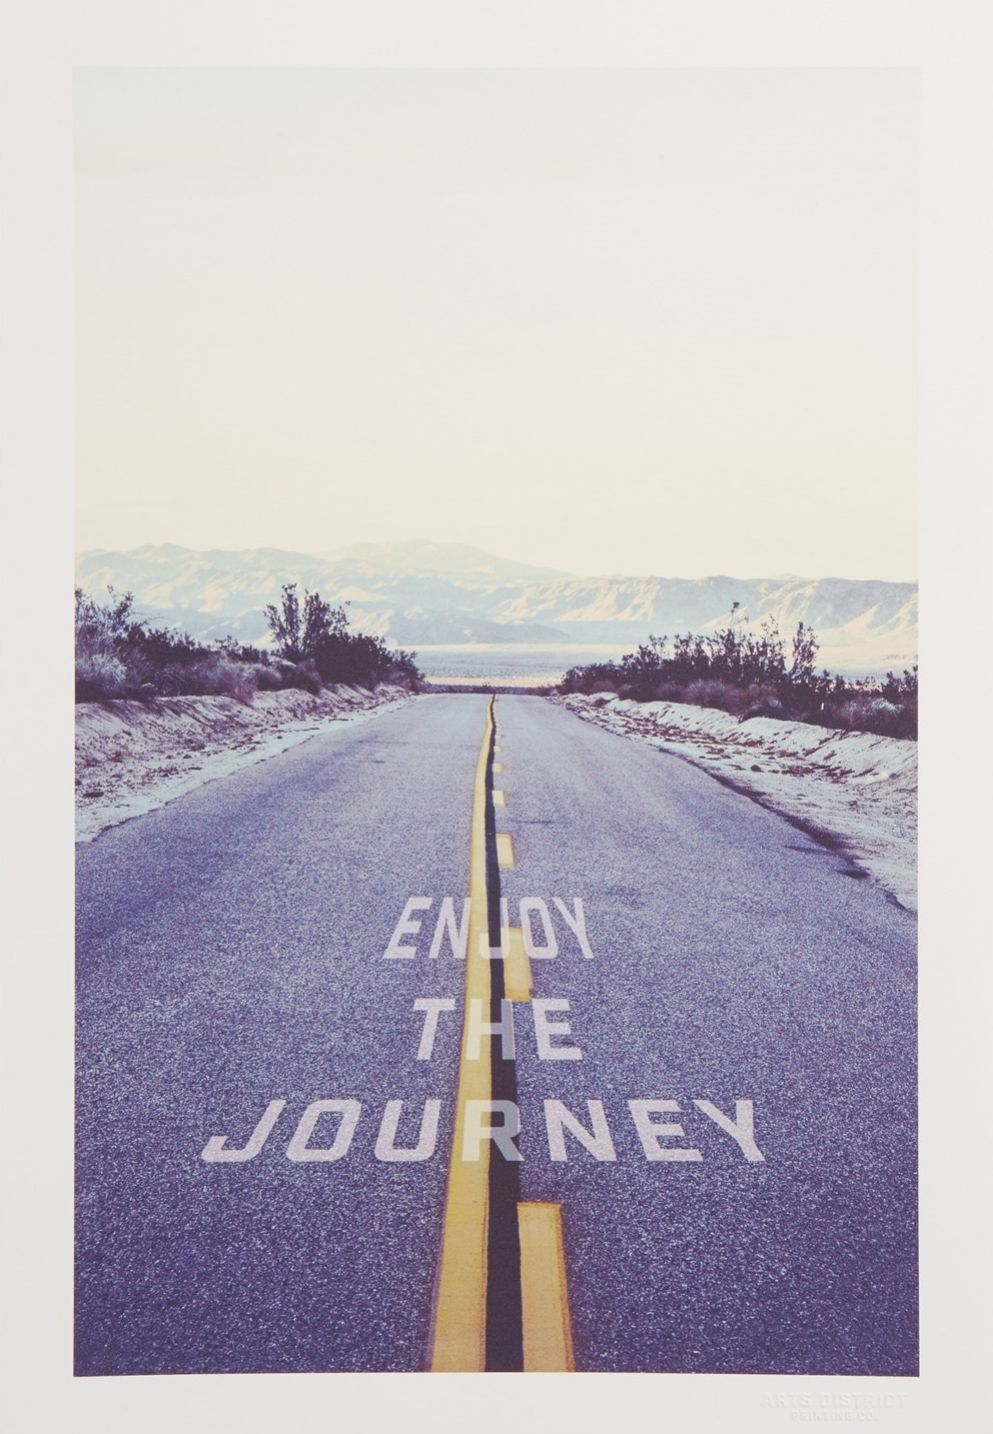 Arts District Printing Co. 'Enjoy the Journey' Print (With